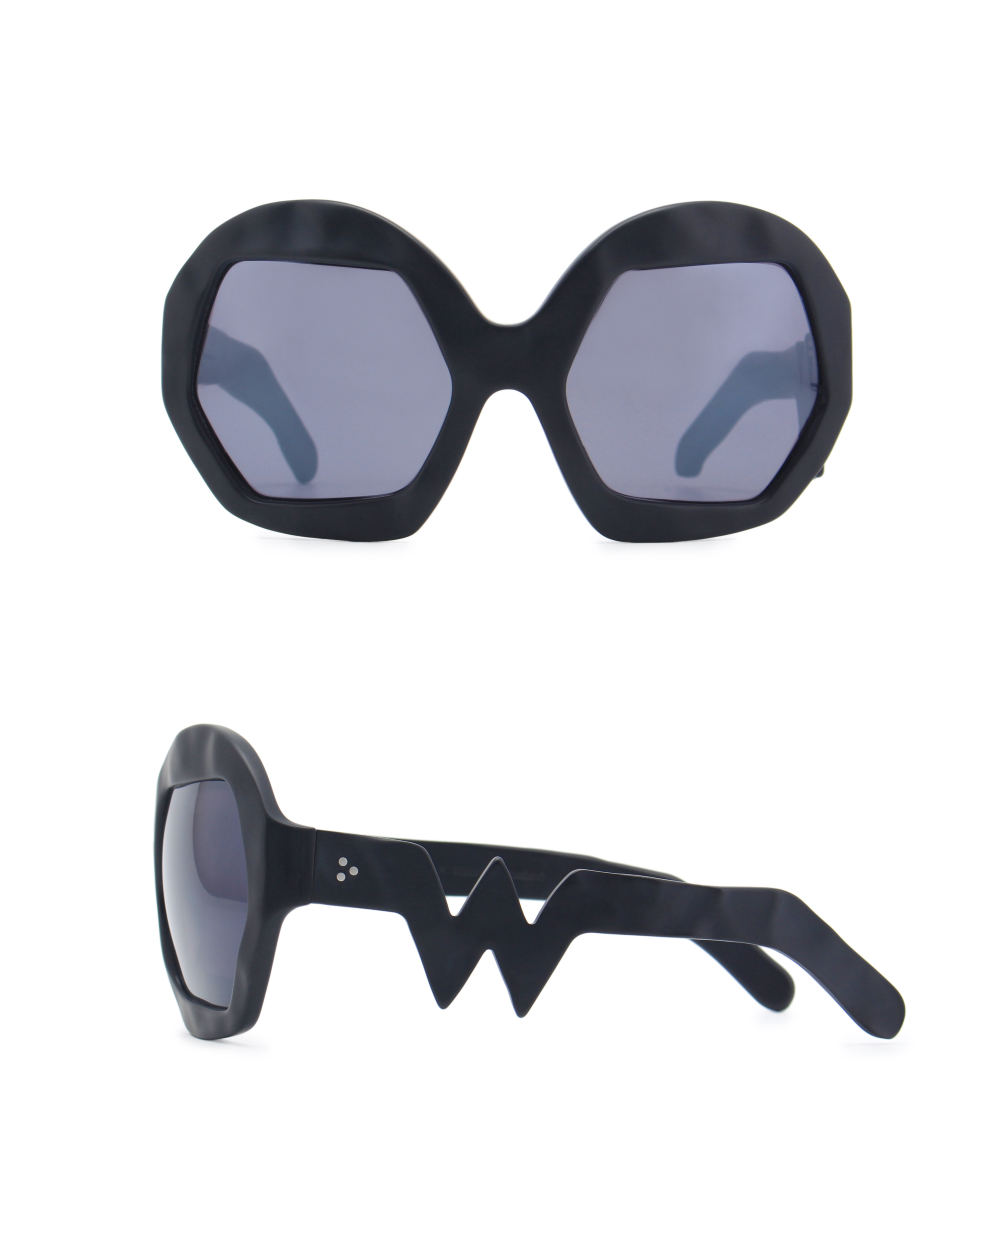 Donder Sunglasses. Black